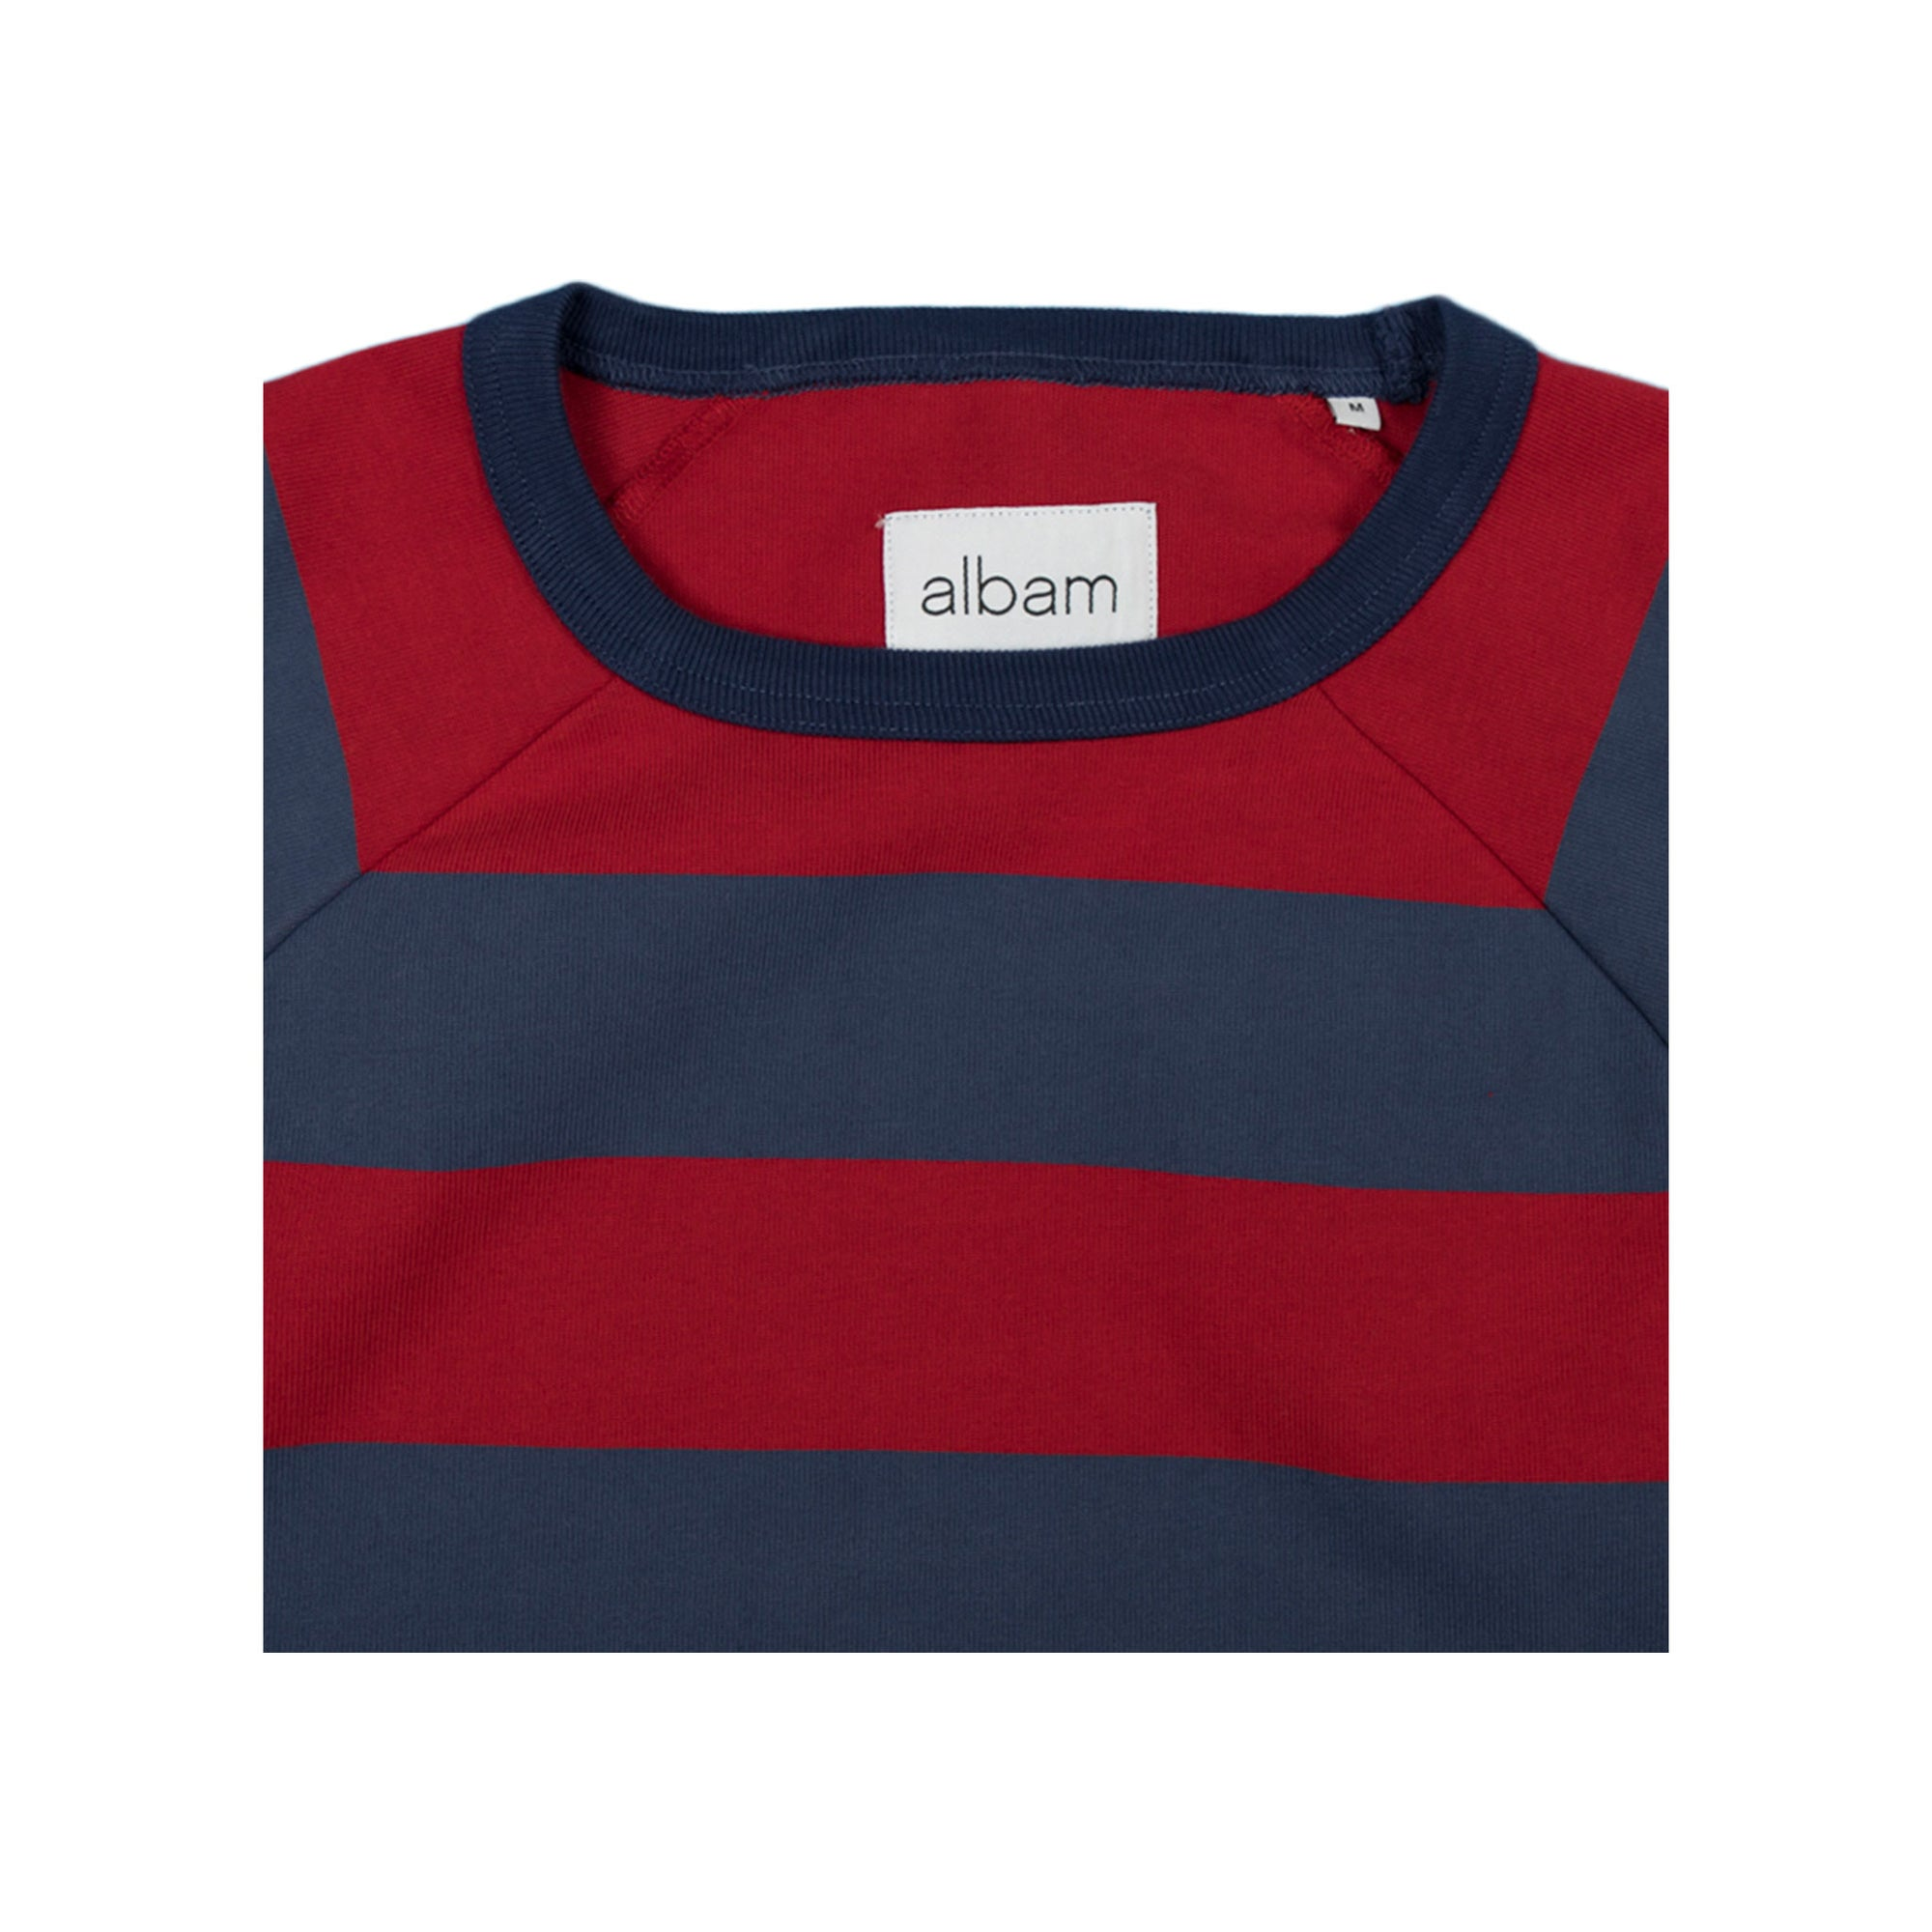 Albam Raglan Striped Sweatshirt in Red and Navy